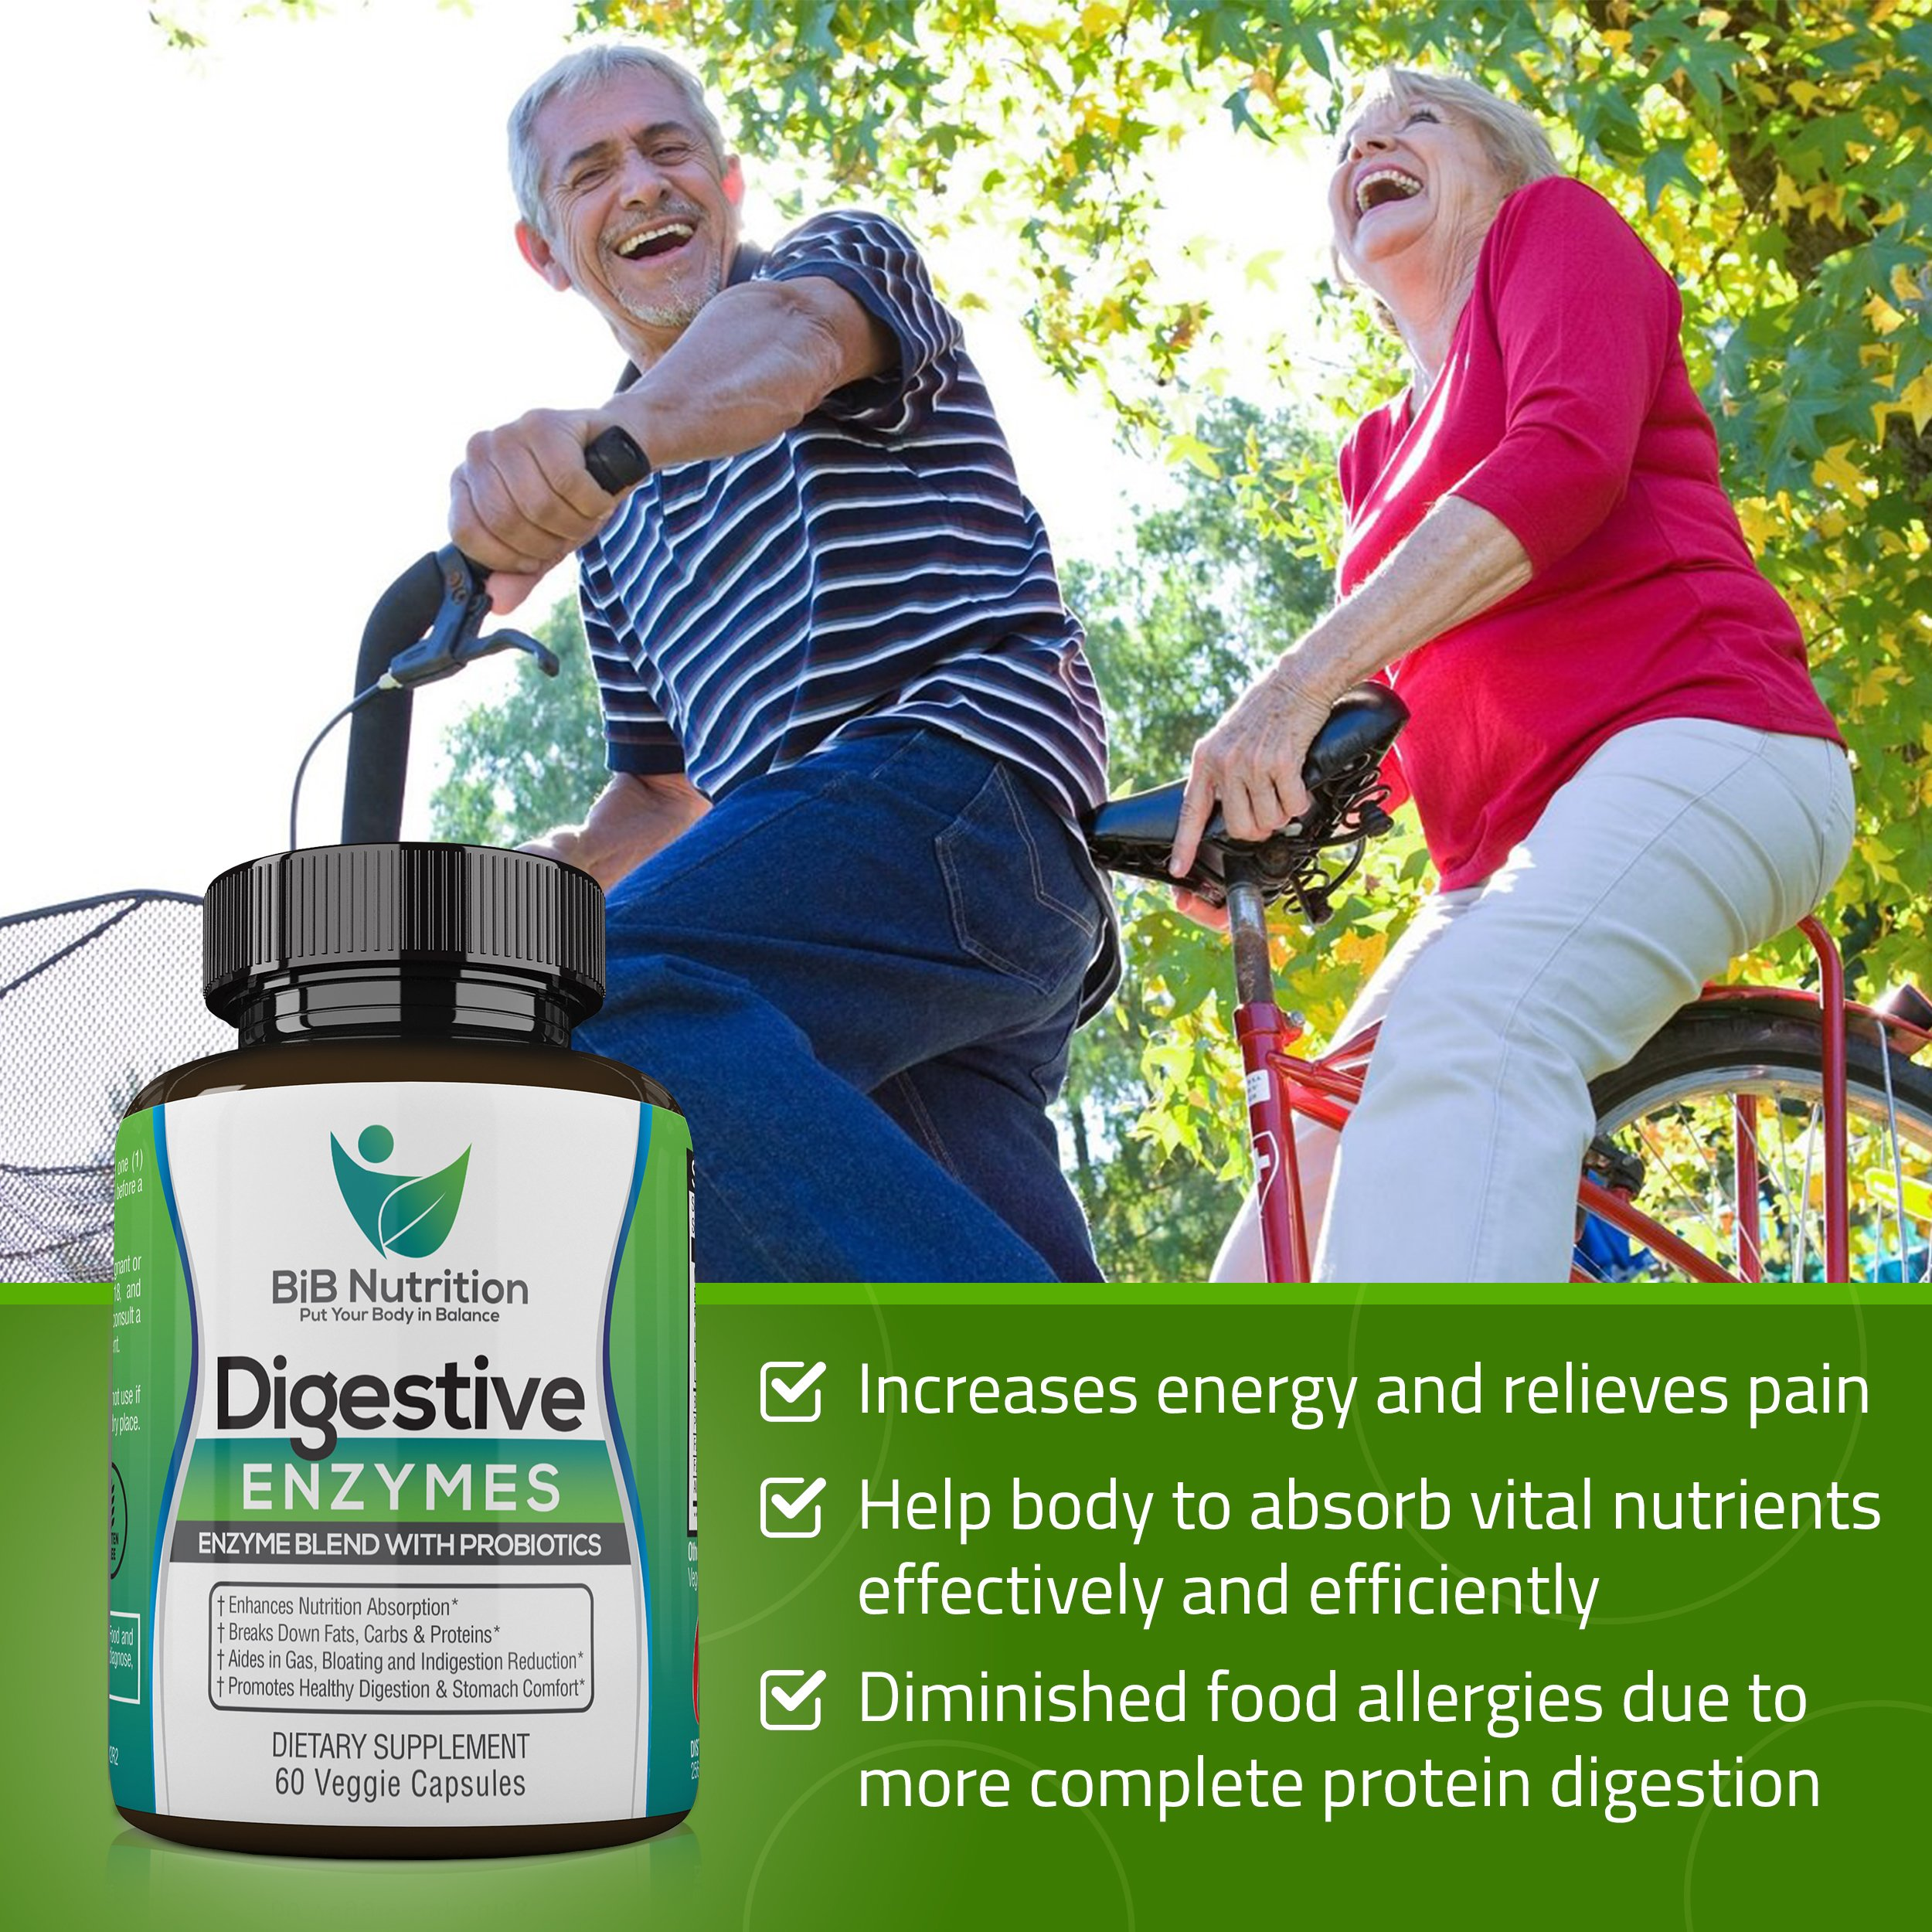 Digestive Enzyme Supplements for Women and Men by BiB Nutrition